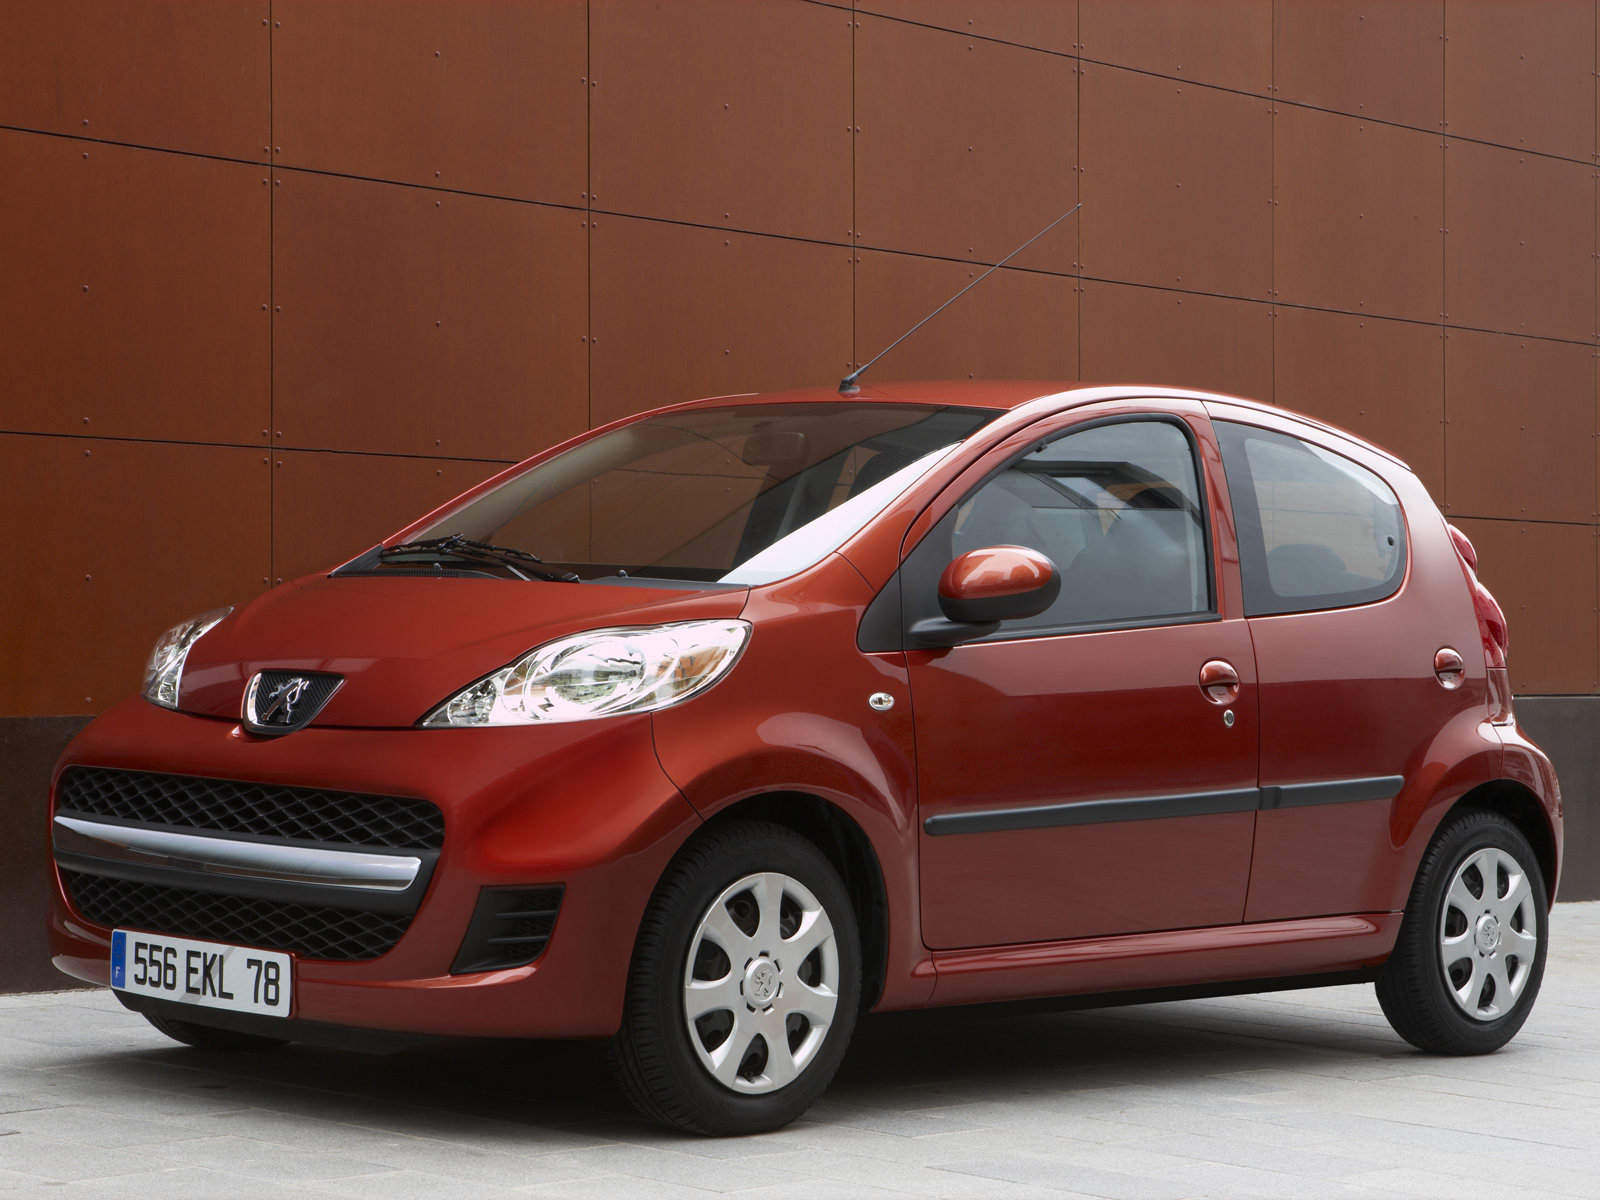 2009 peugeot 107 pictures insurance informations. Black Bedroom Furniture Sets. Home Design Ideas